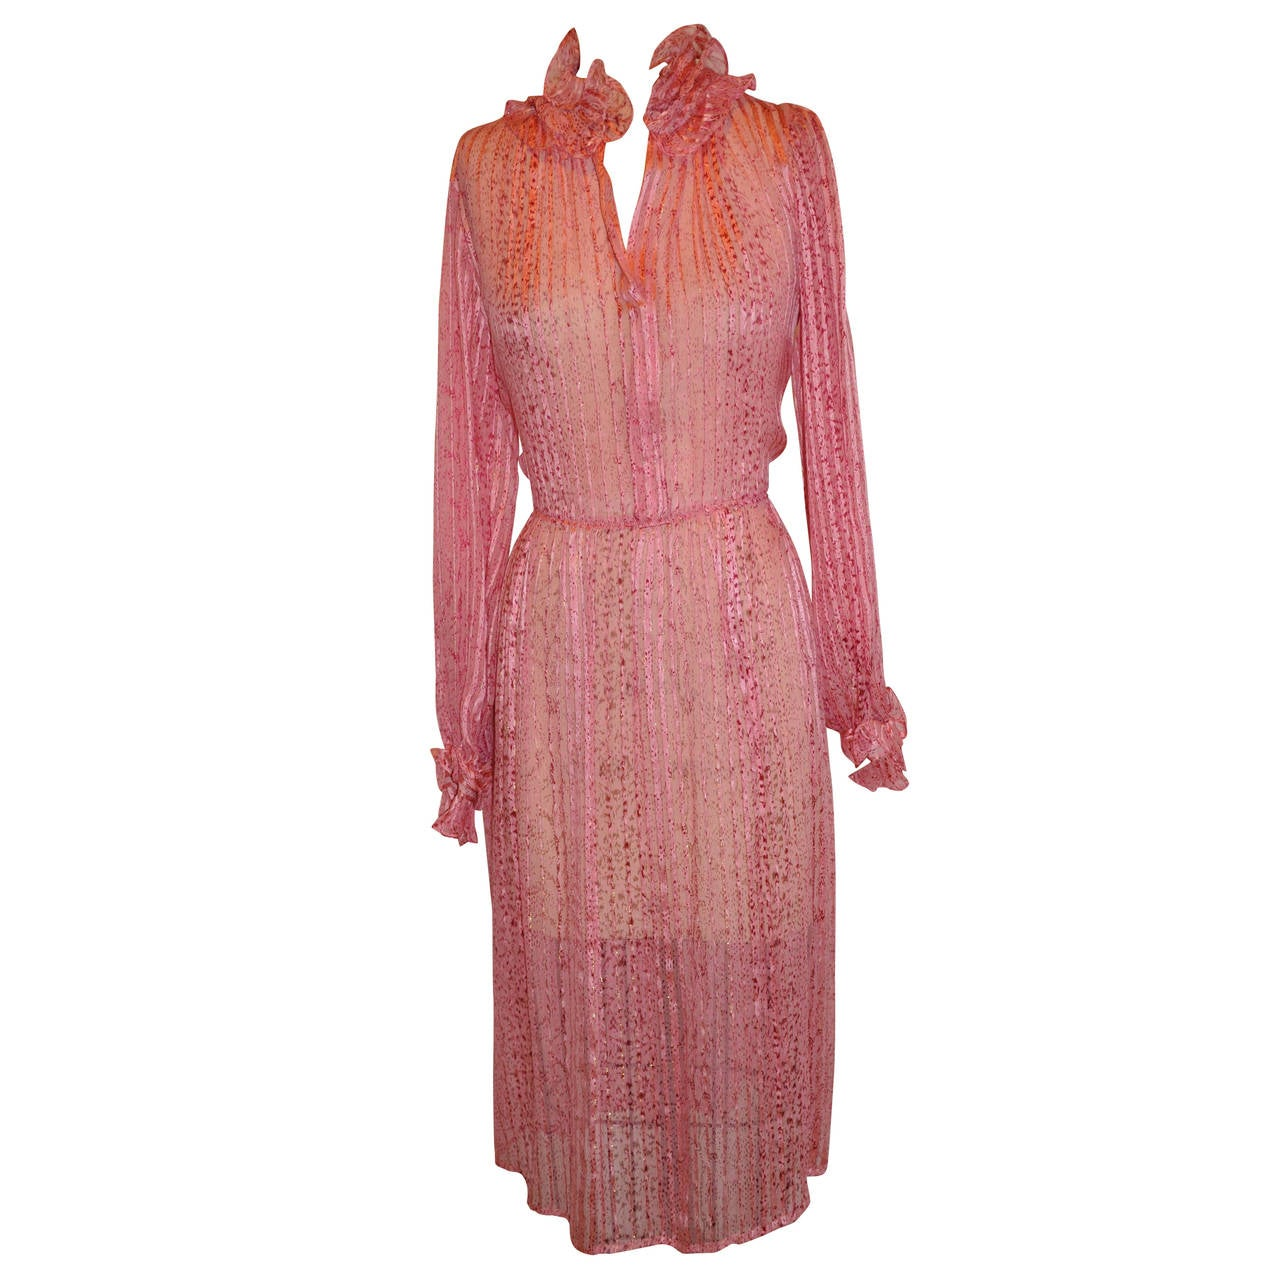 0be579c4988 Angelo Tariazzi neon pink lightweight knitted dress For Sale at 1stdibs